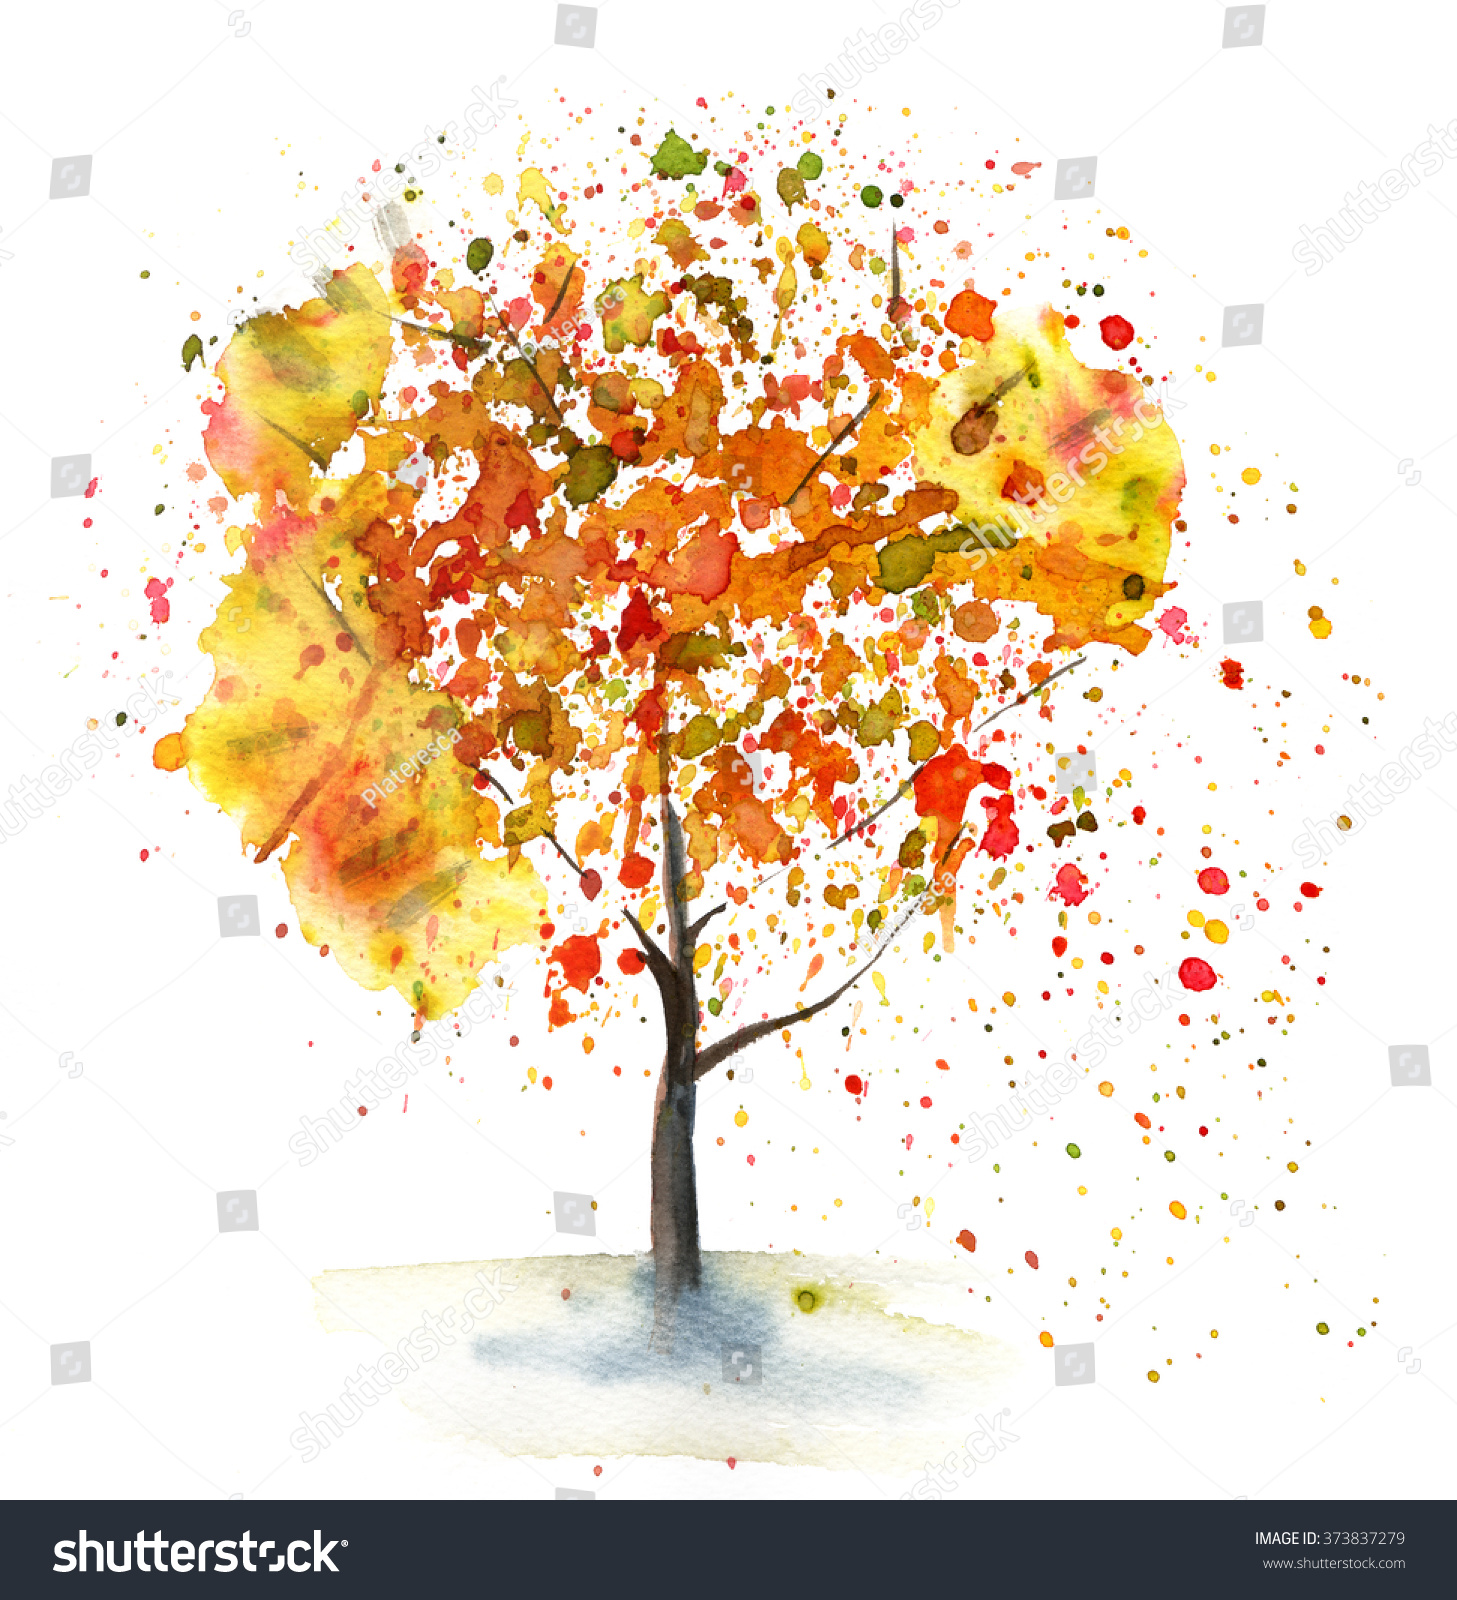 Watercolor Drawing Autumn Tree Hand Drawn Stock Illustration ... for Tree Drawing With Watercolor  270bof